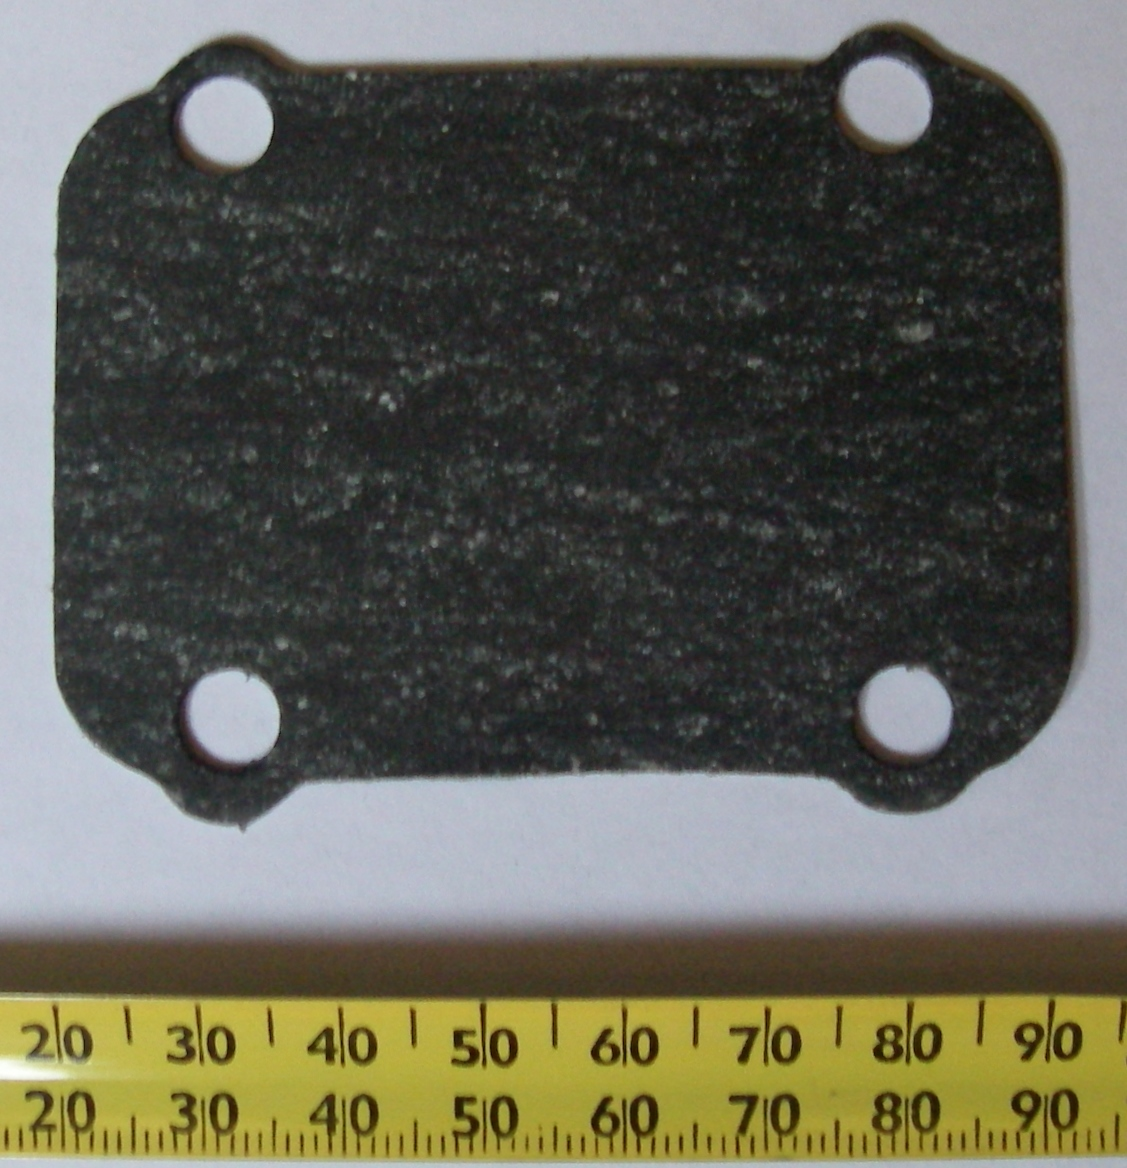 <b>Lister LT1/LV1 Inspection Door Gasket</b>